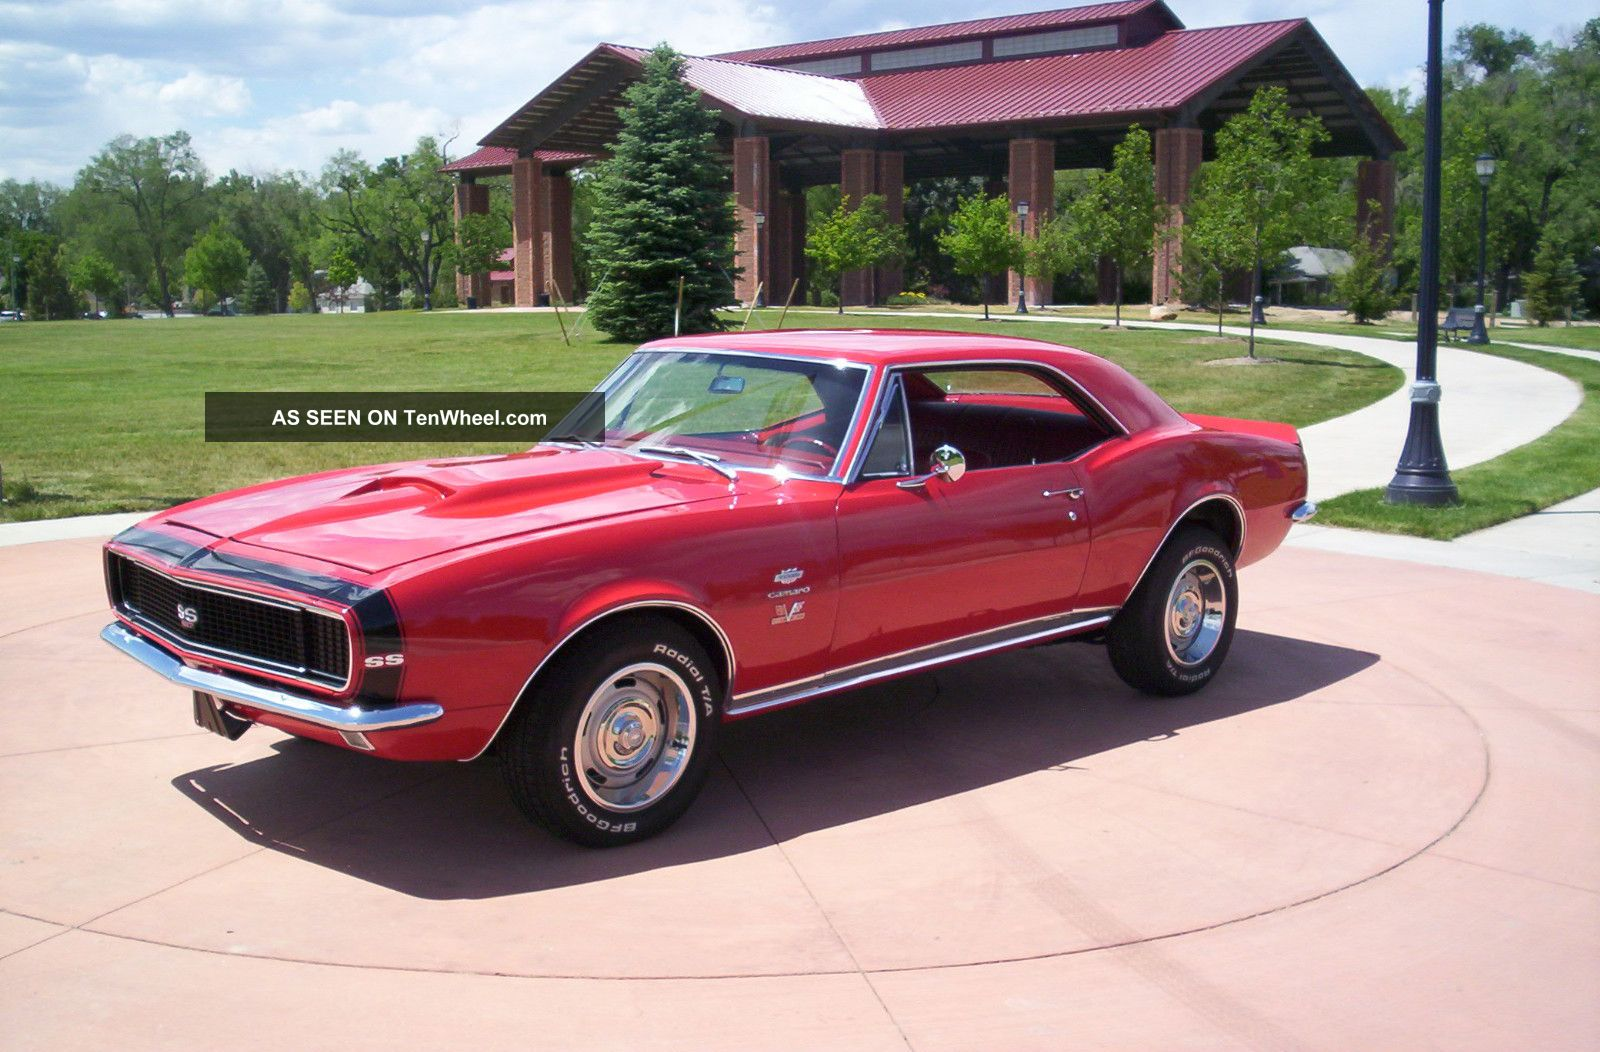 1969 camaro copo 427 camaro photo 4. Cars Review. Best American Auto & Cars Review